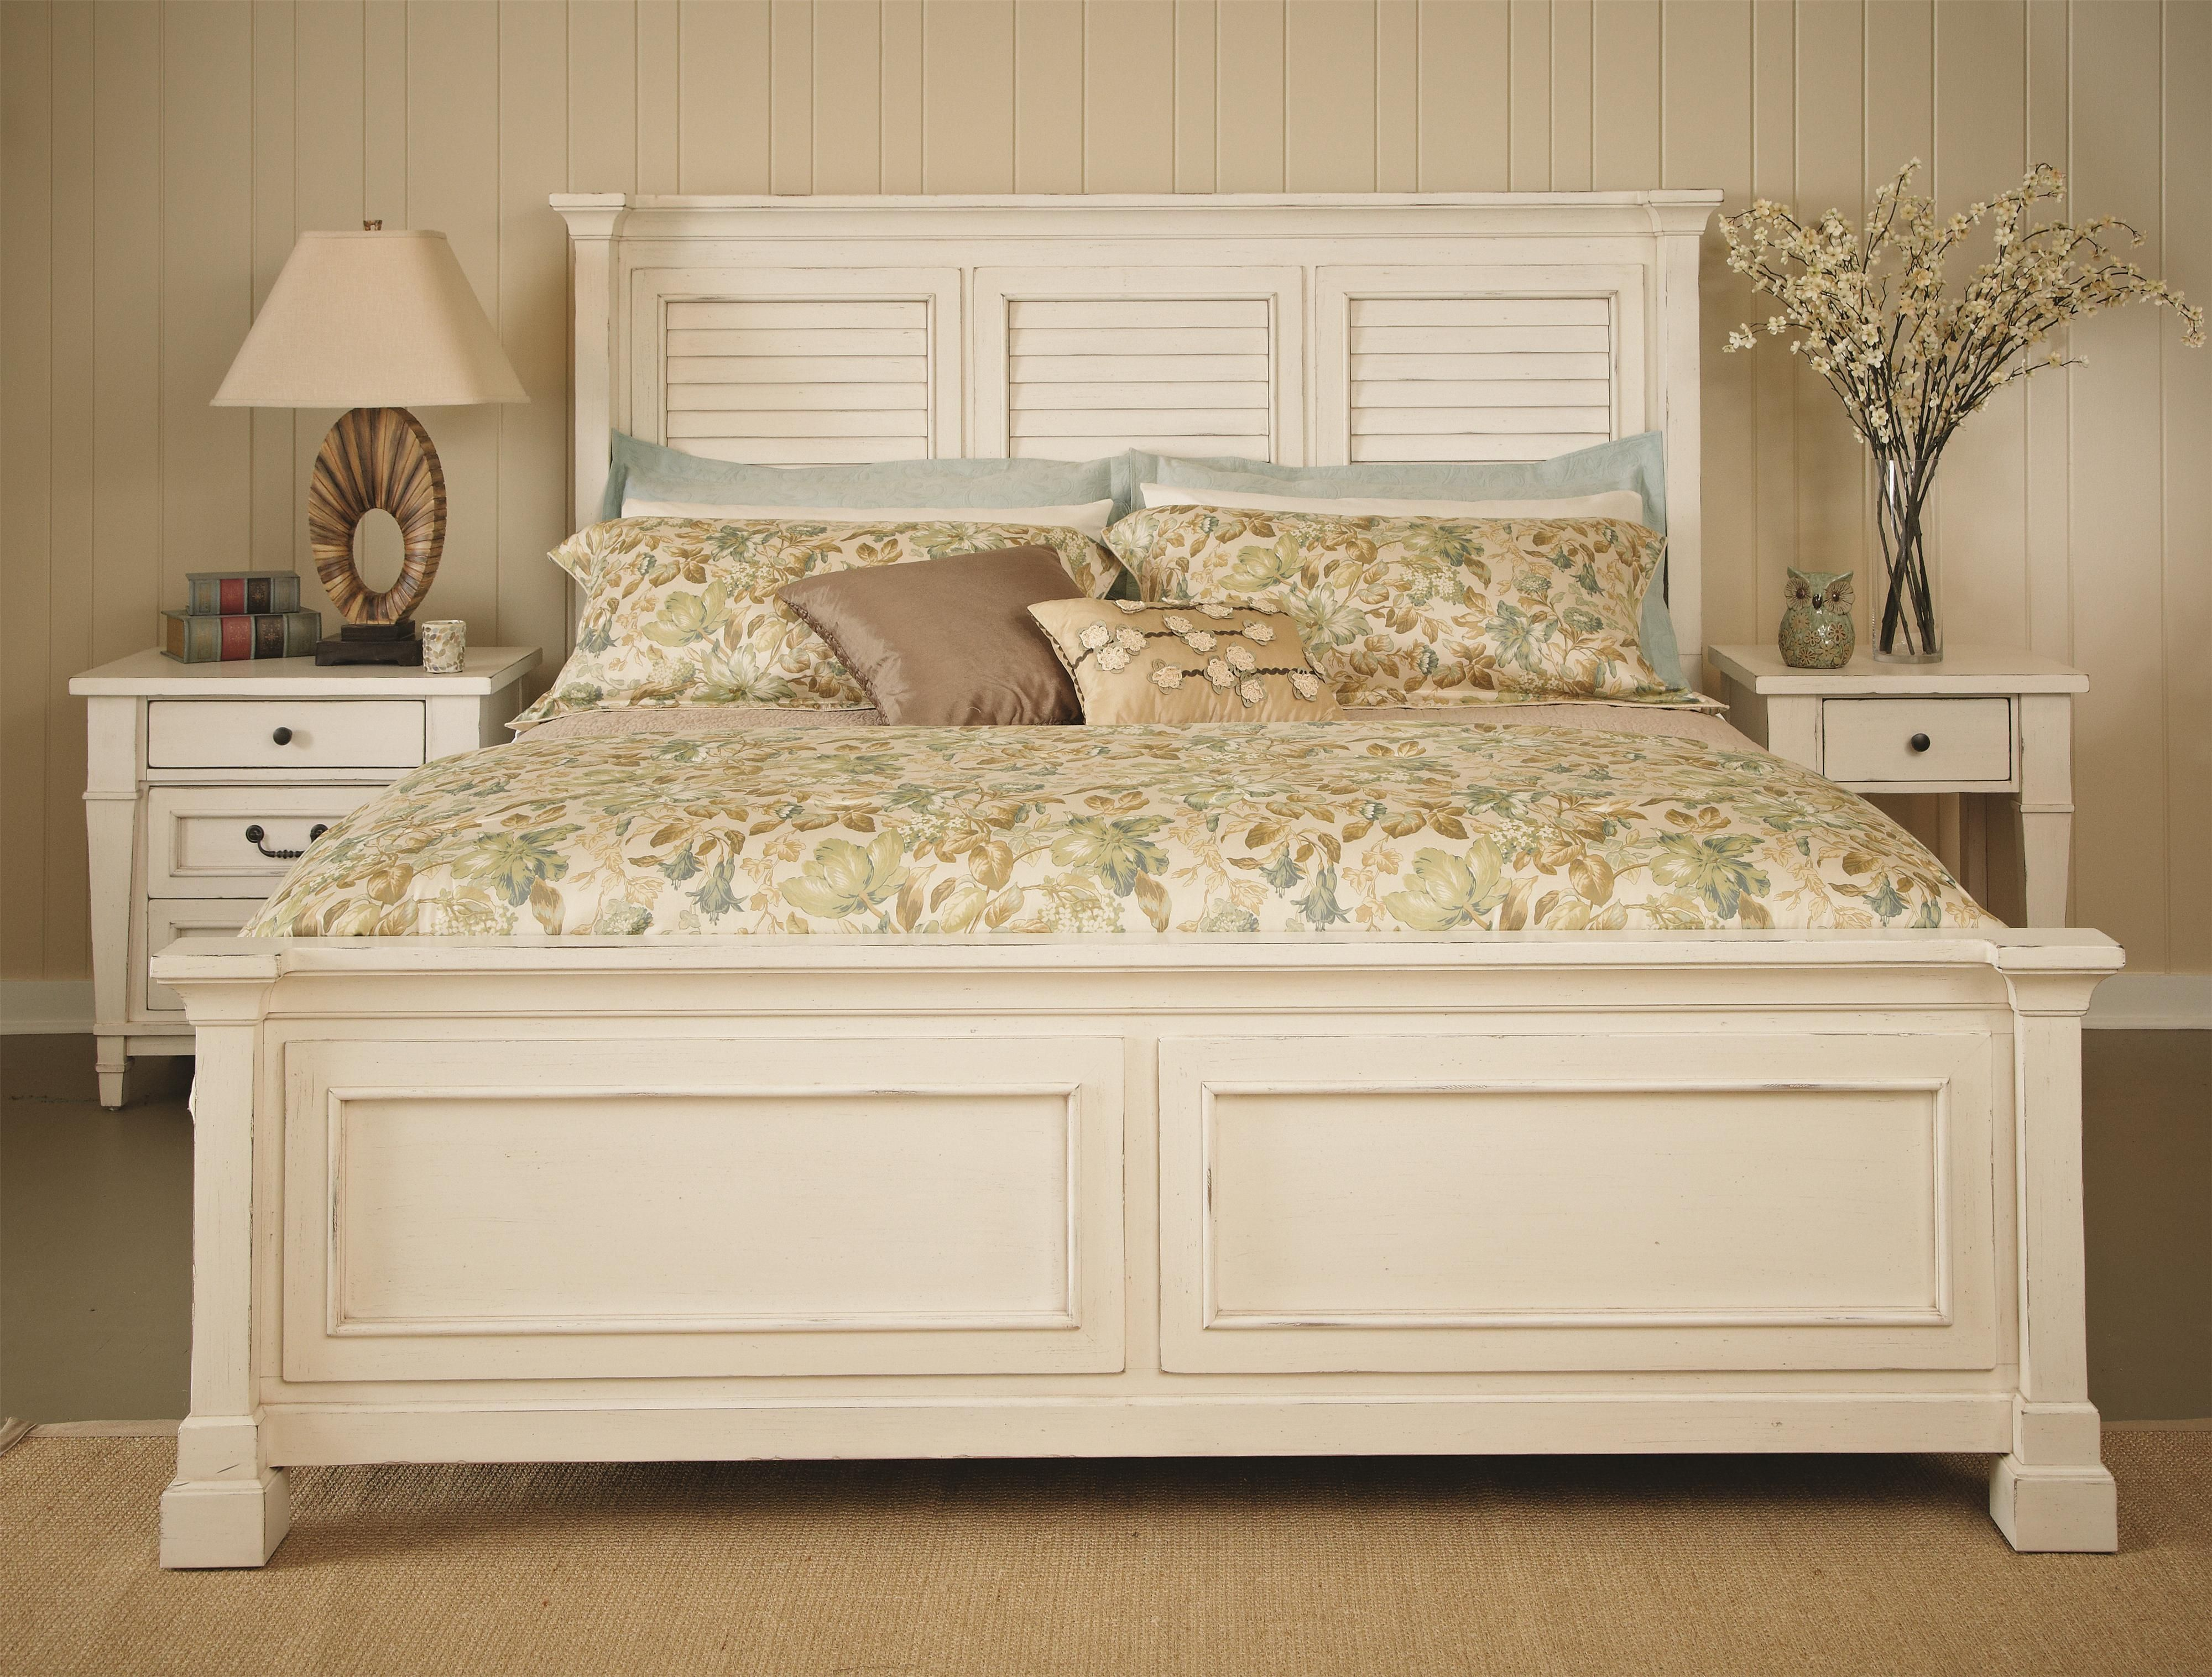 Astoria Queen Bedroom Group   Walkeru0027s Furniture   Bedroom Group Spokane,  Kennewick, Tri